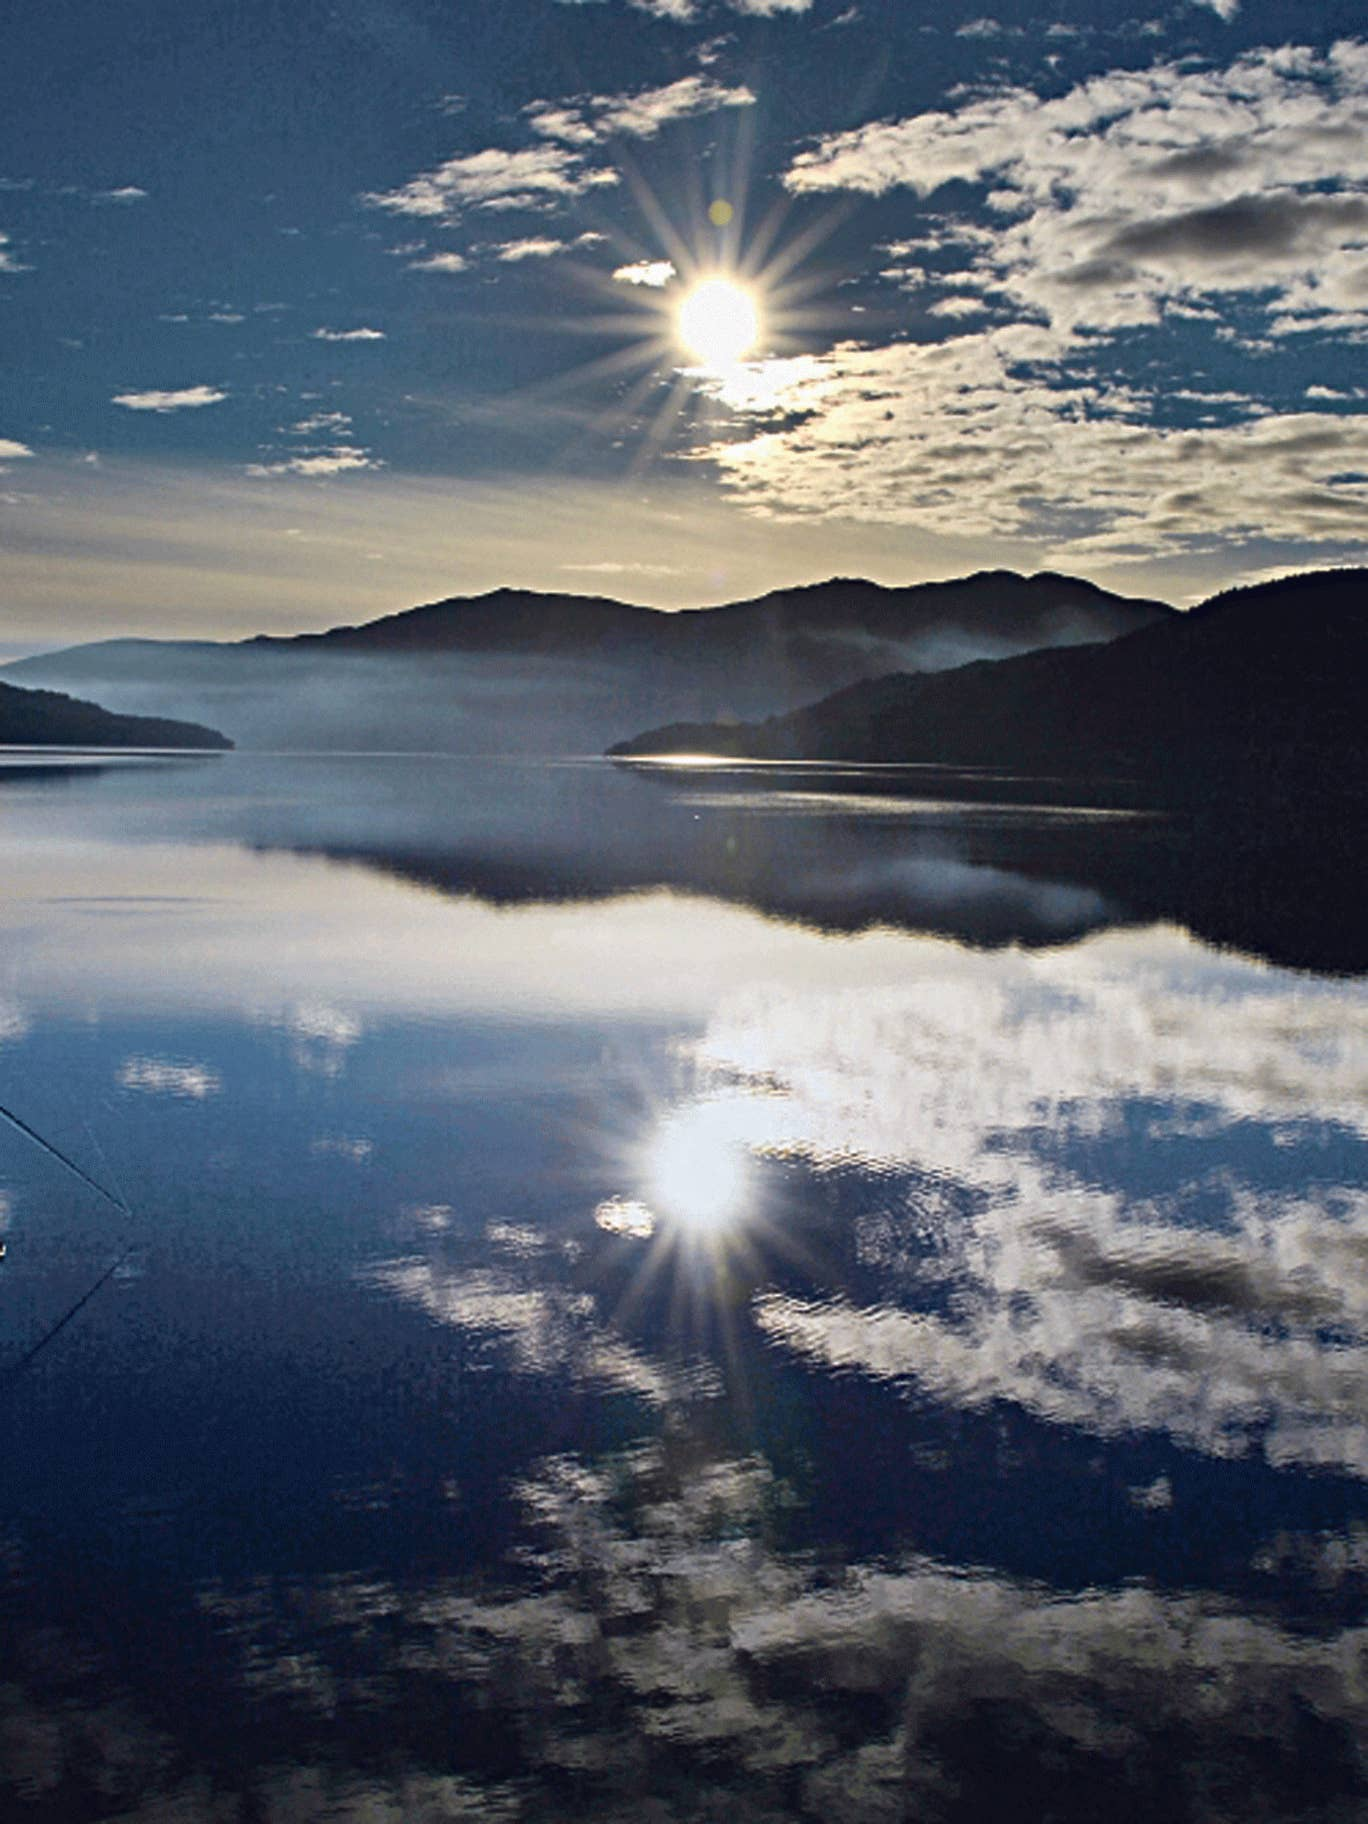 Reflective calm: Loch Lomond, where 'the scenery is stunning'